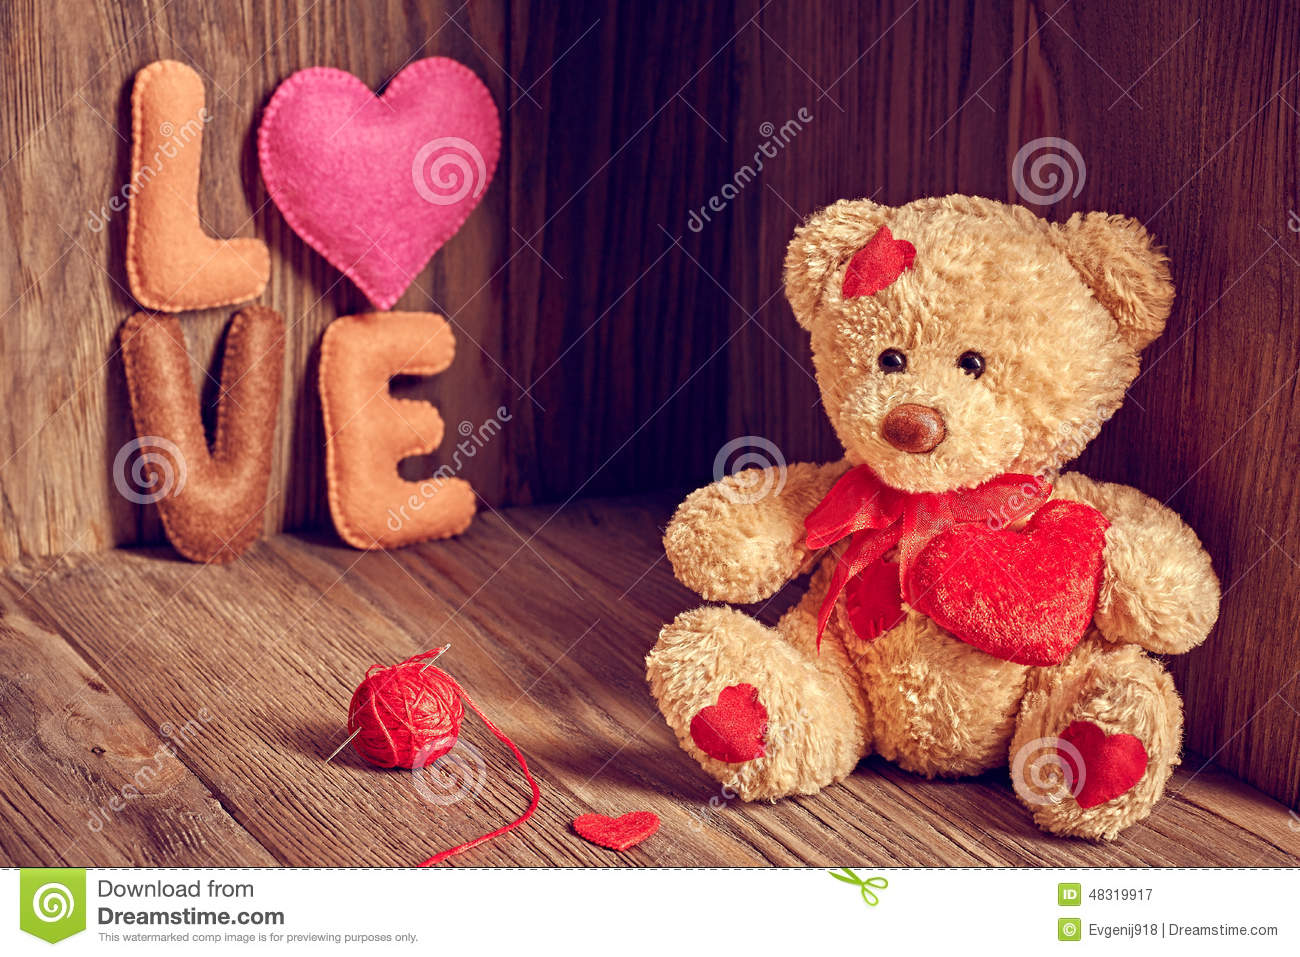 Image of teddy bear with love impremedia alone bear cute day handmade love red retro romantic teddy voltagebd Image collections